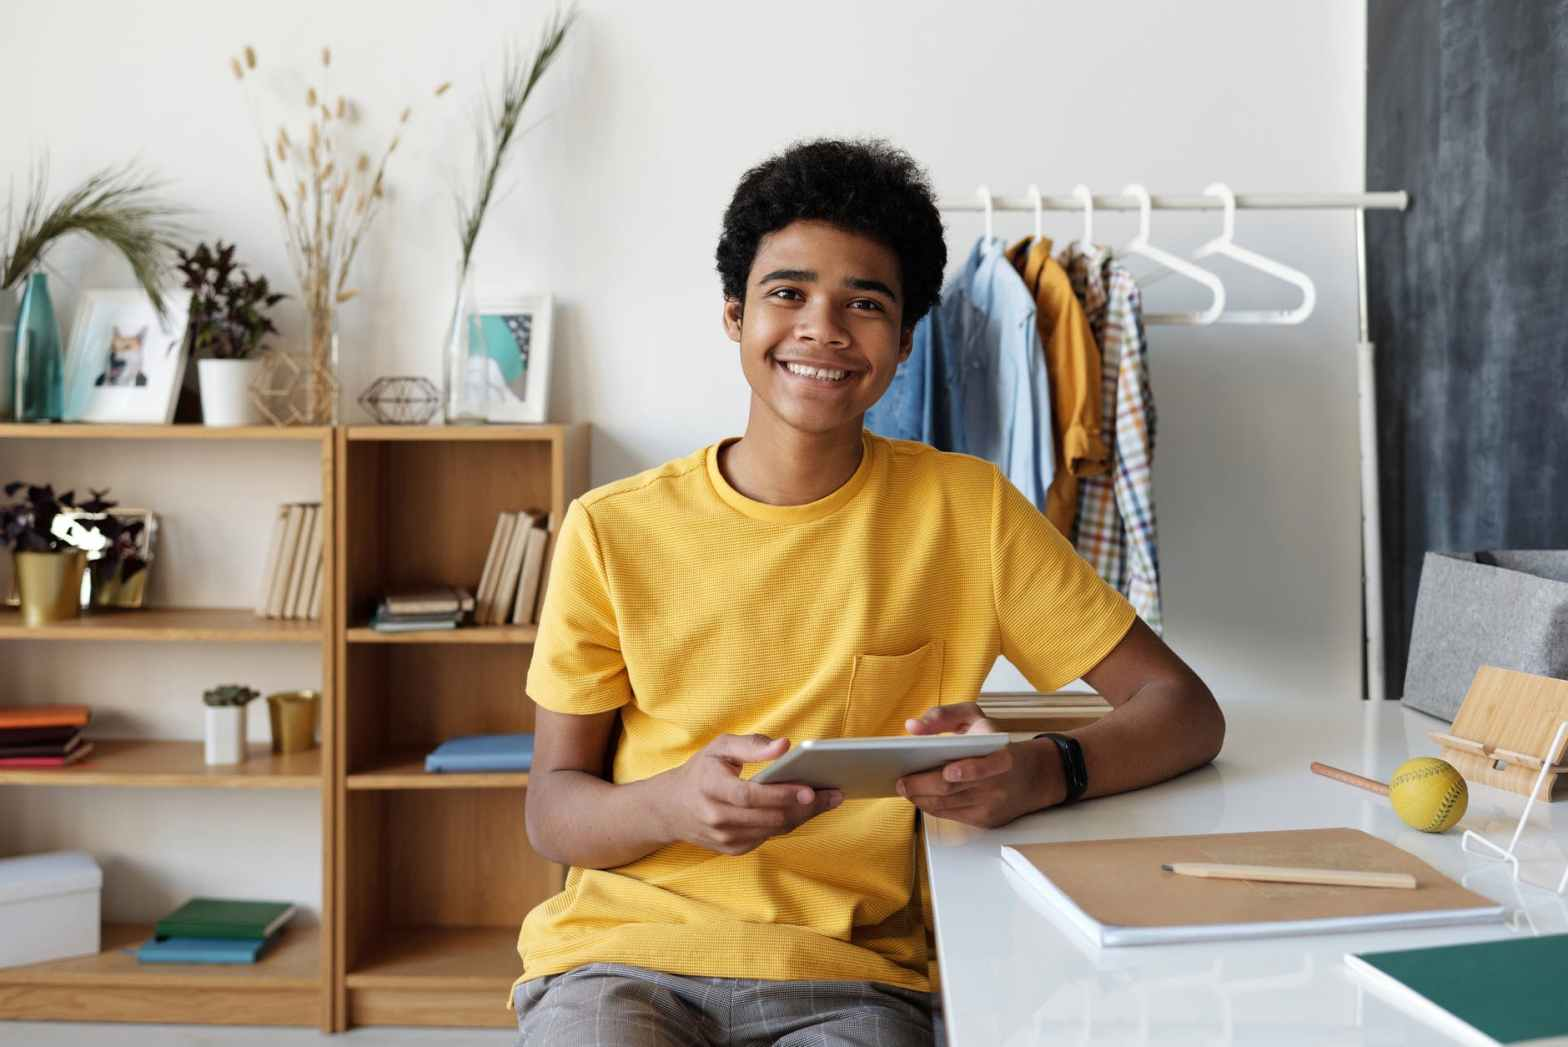 boy in yellow crew neck t shirt sitting on chair